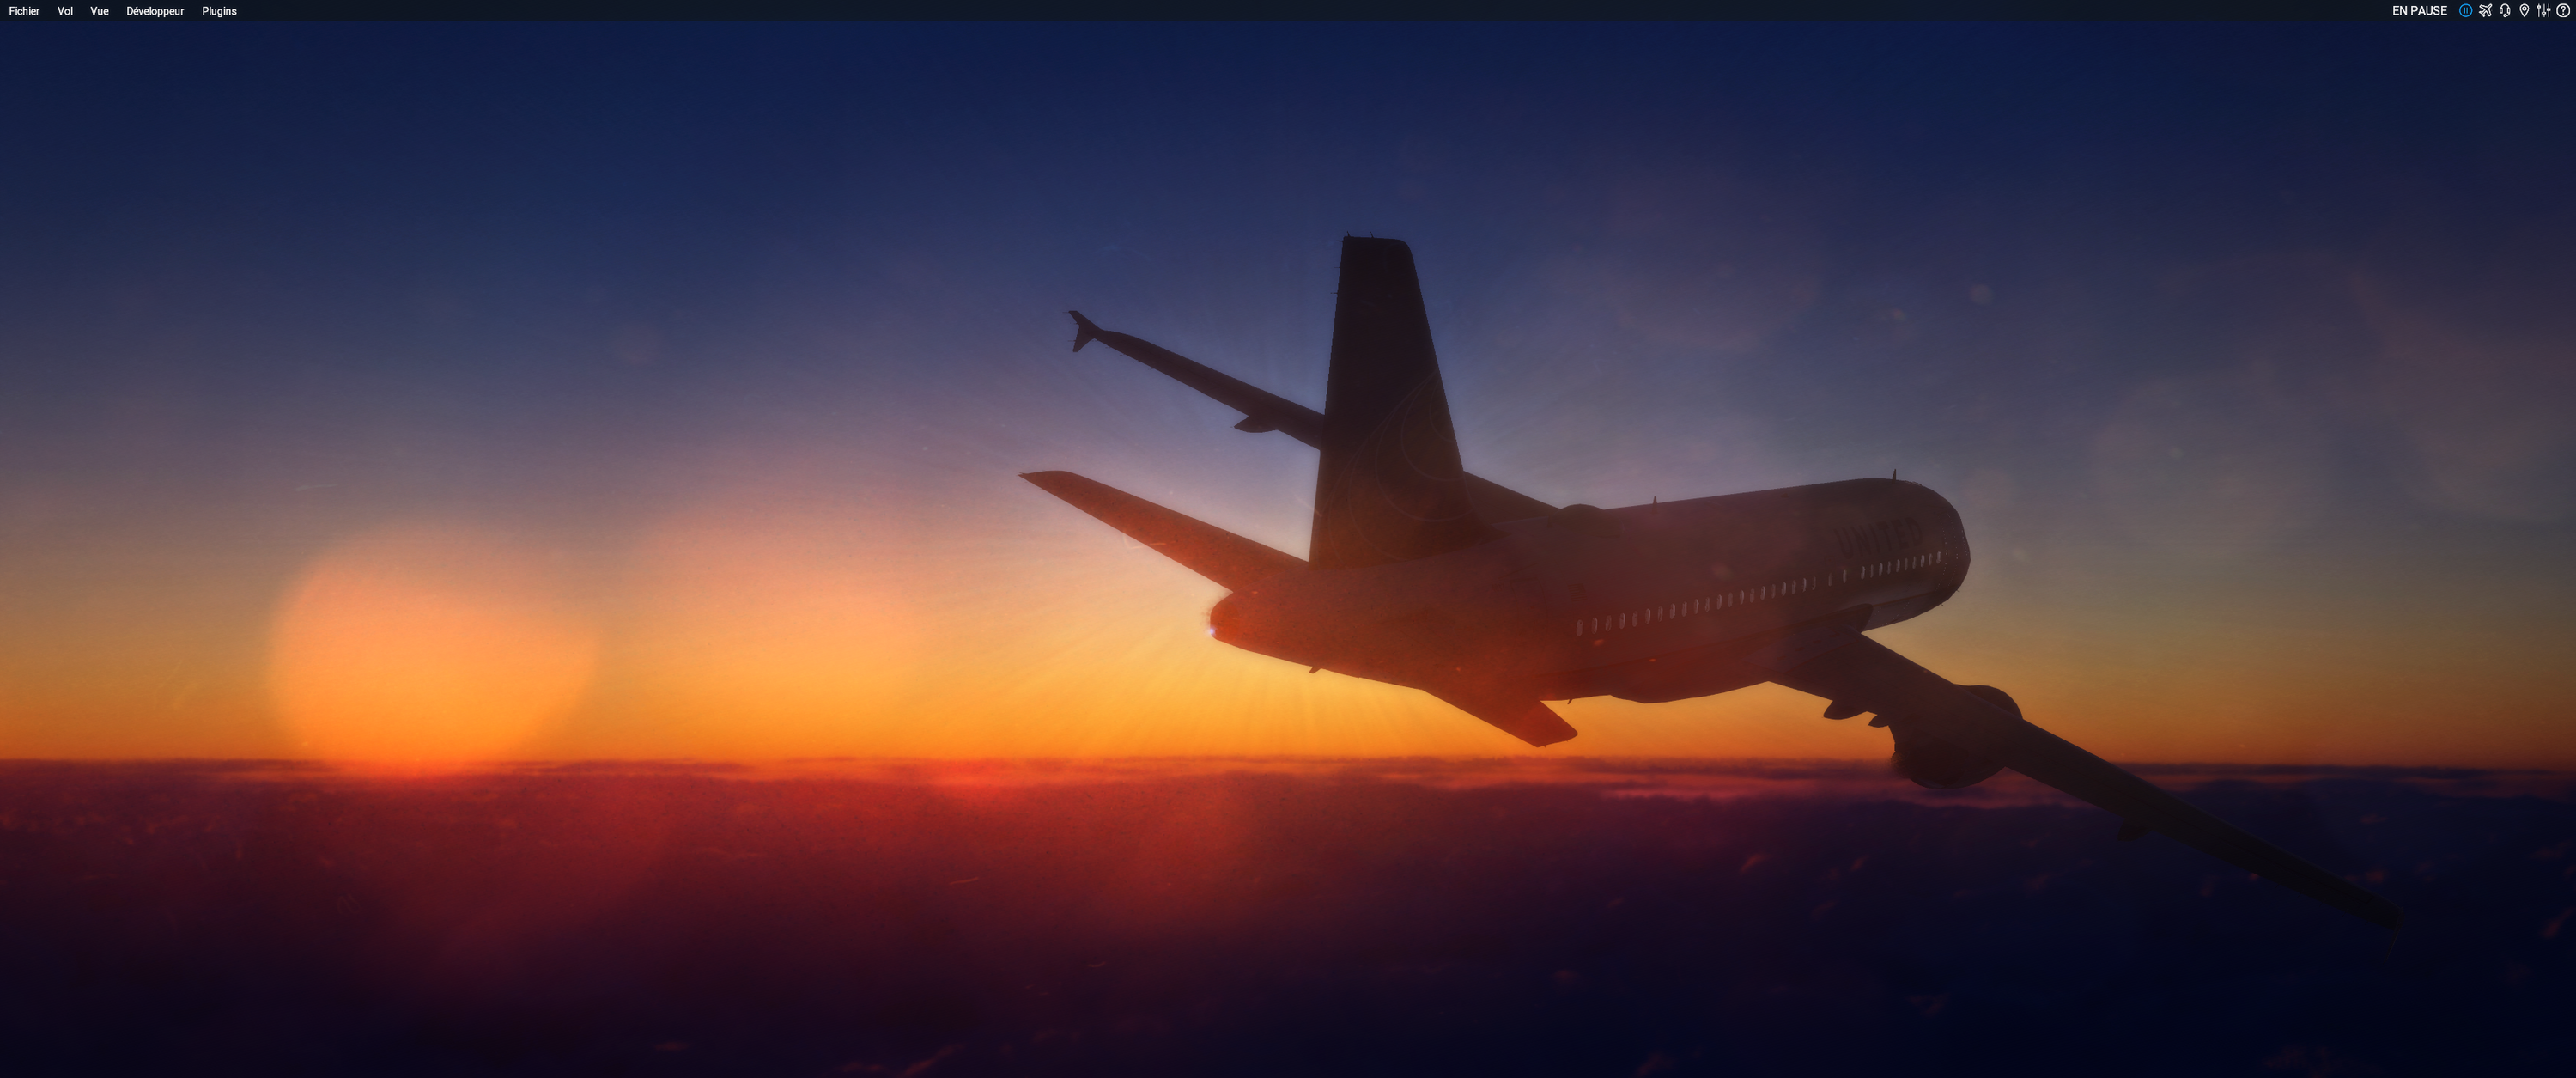 X-Plane Screenshot 2020.03.24 - 02.18.35.14.png